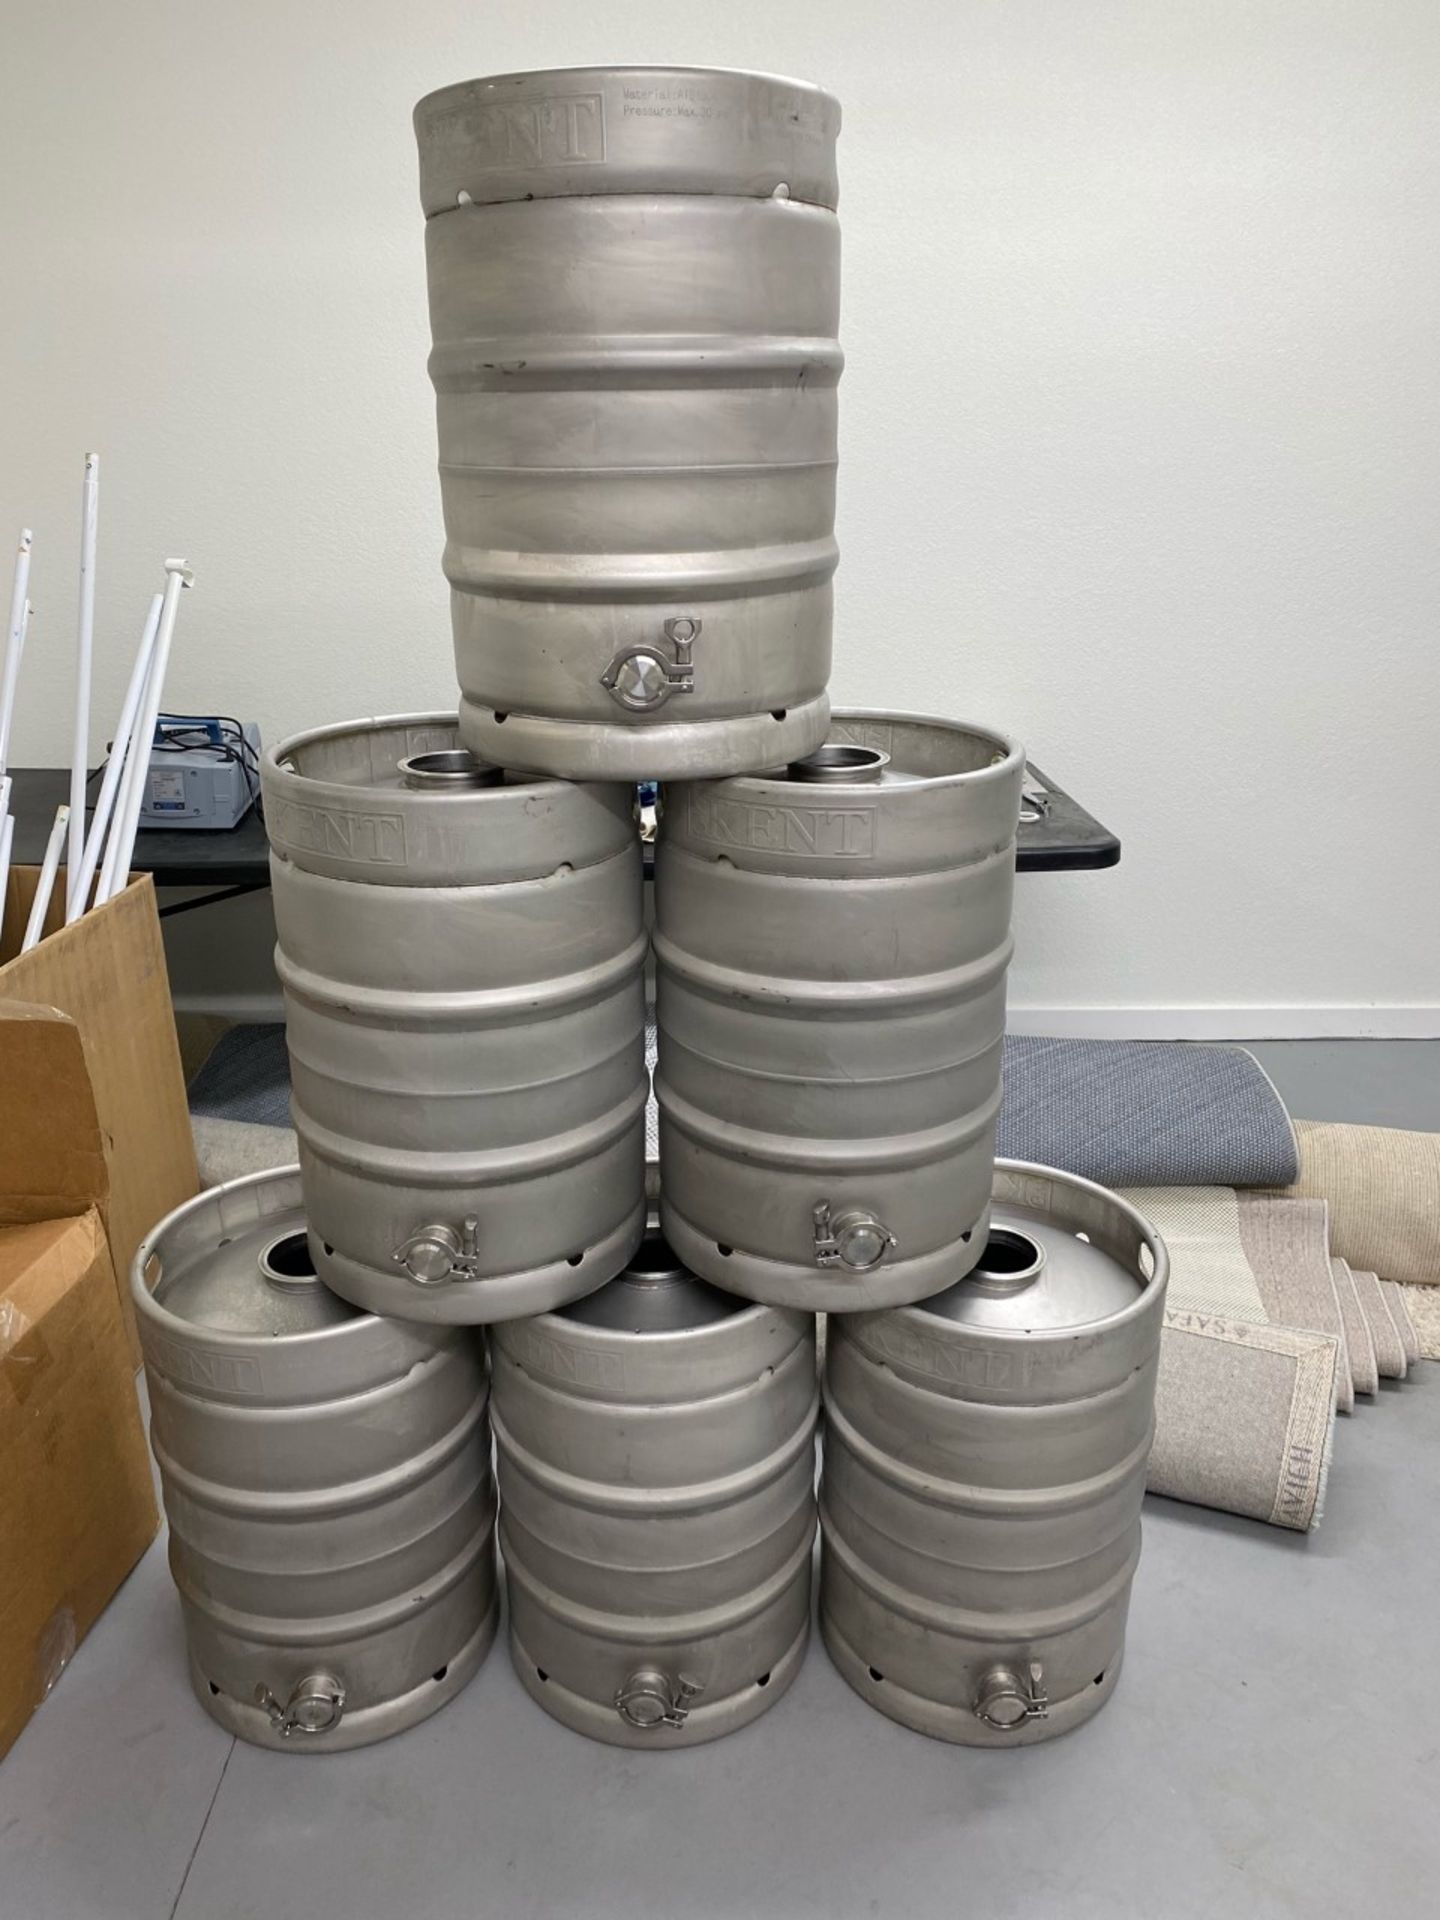 Used- Delta Separations CUP-15 Ethanol Alcohol Extraction System, Capacity: 8-14 lbs per Batch - Image 5 of 5